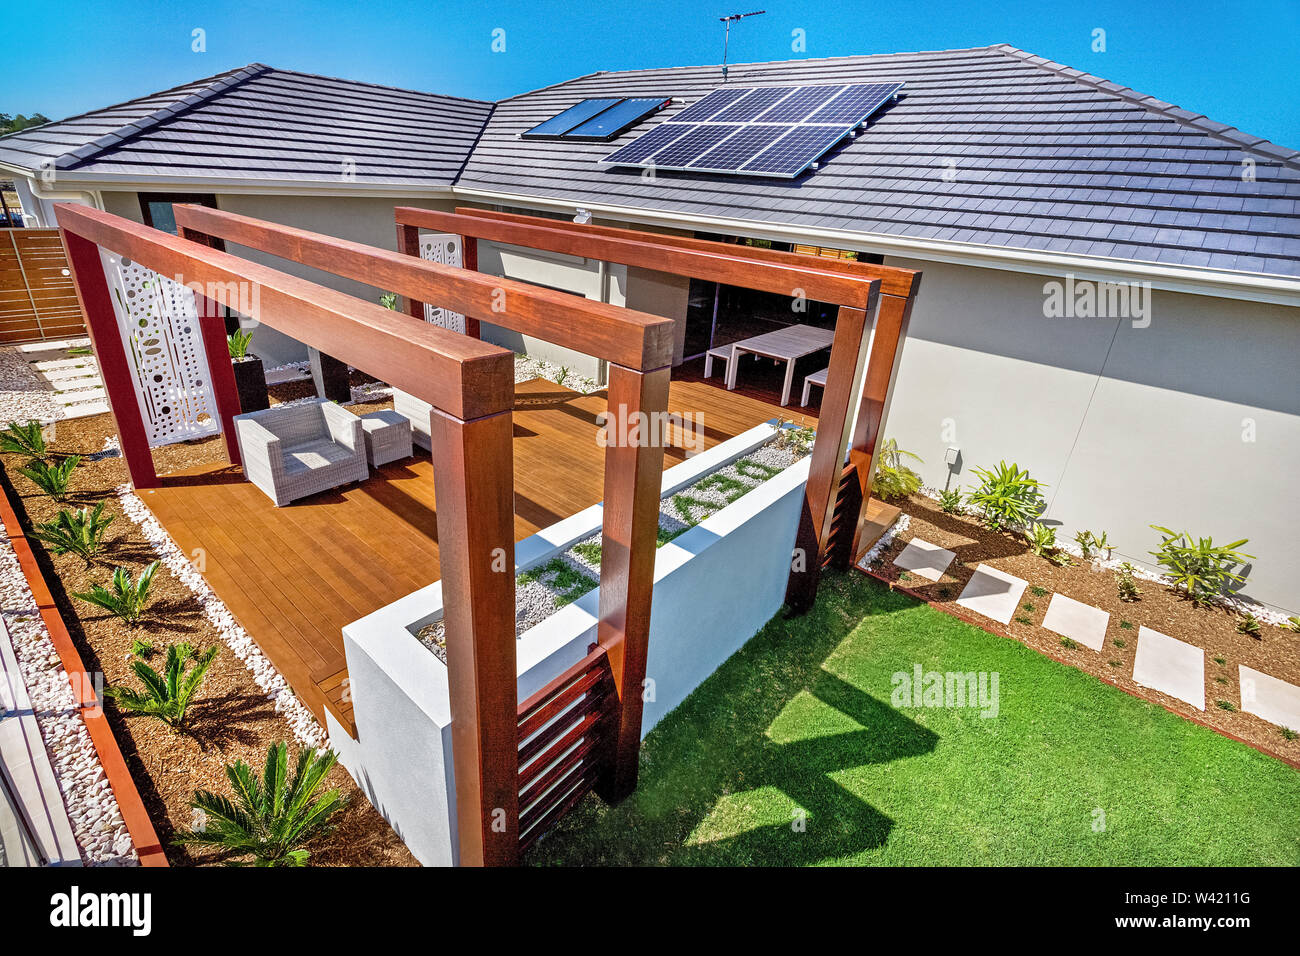 https www alamy com an aerial view of patio featuring wooden panel flooring and solar panels on the house roof image260658876 html